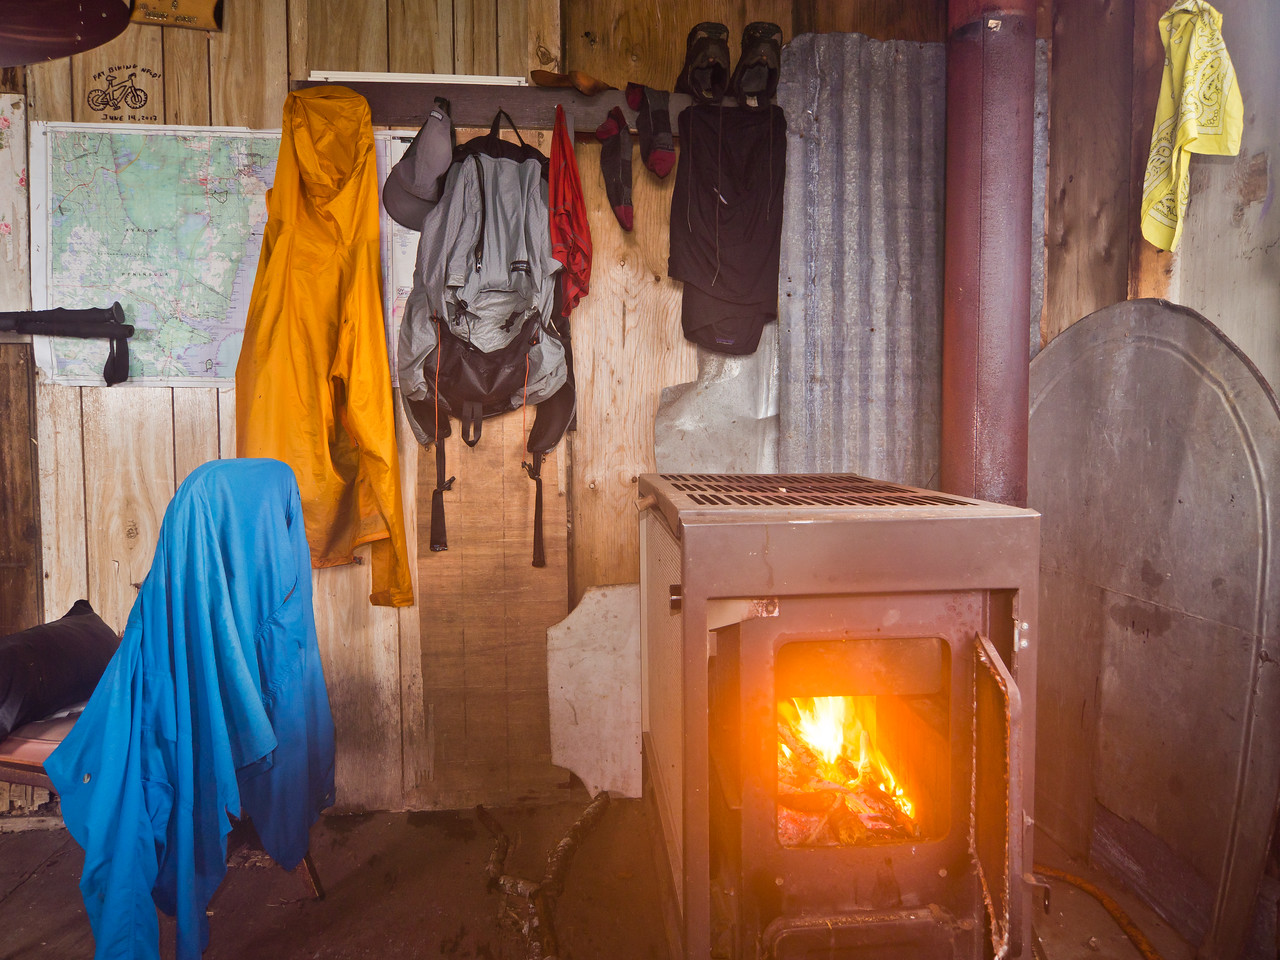 Drying clothes at Shoal Bay Inn